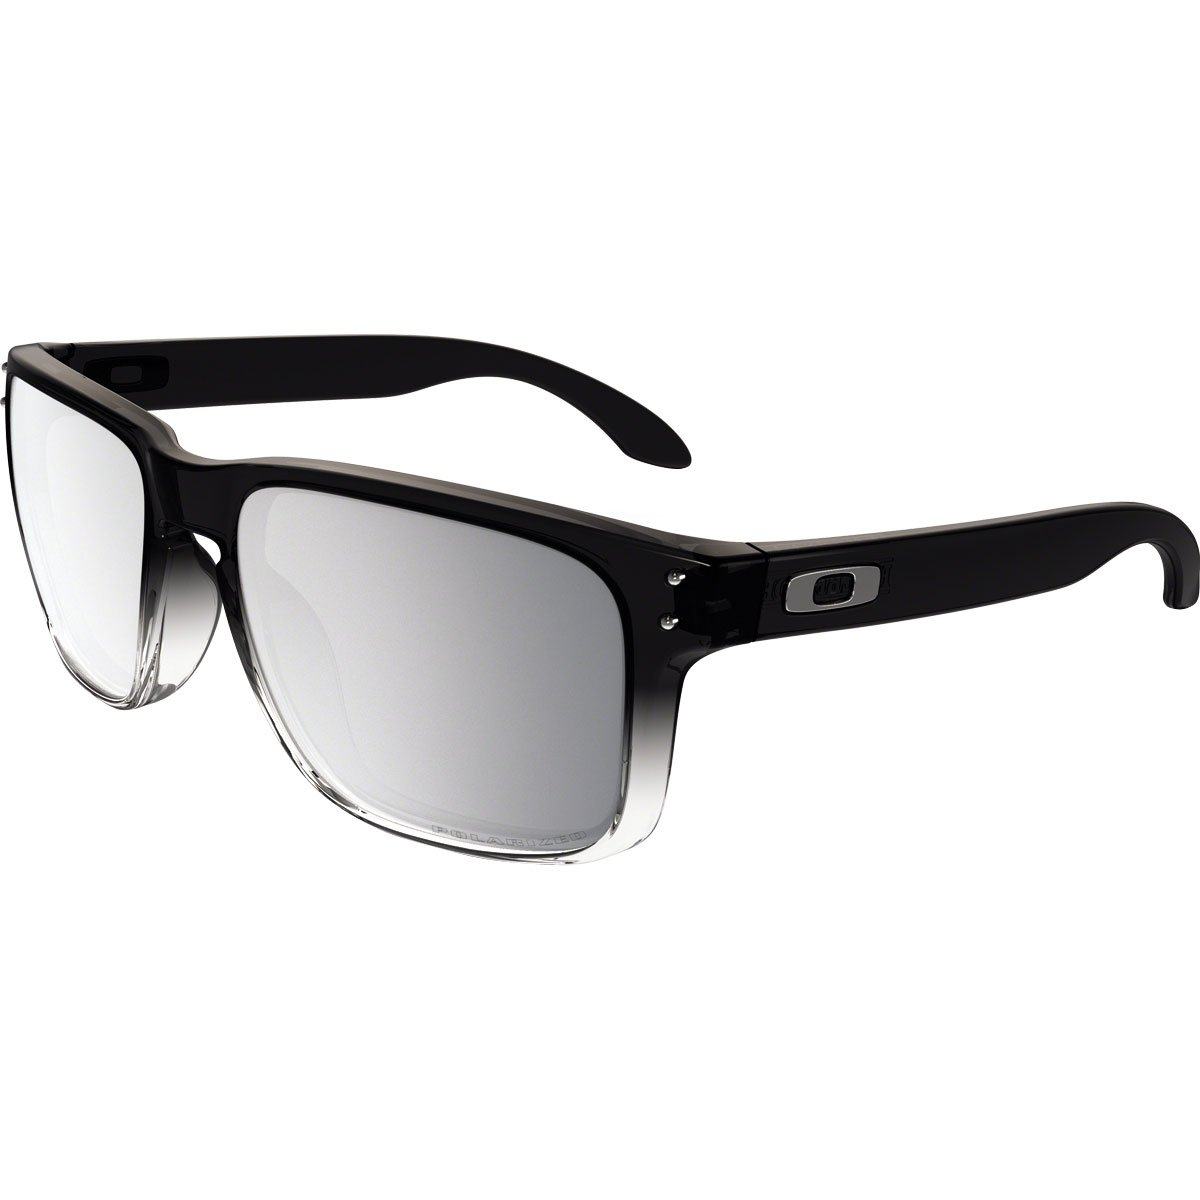 bb4021723e Galleon - Oakley Men s Holbrook Polarized Iridium Square Sunglasses ...